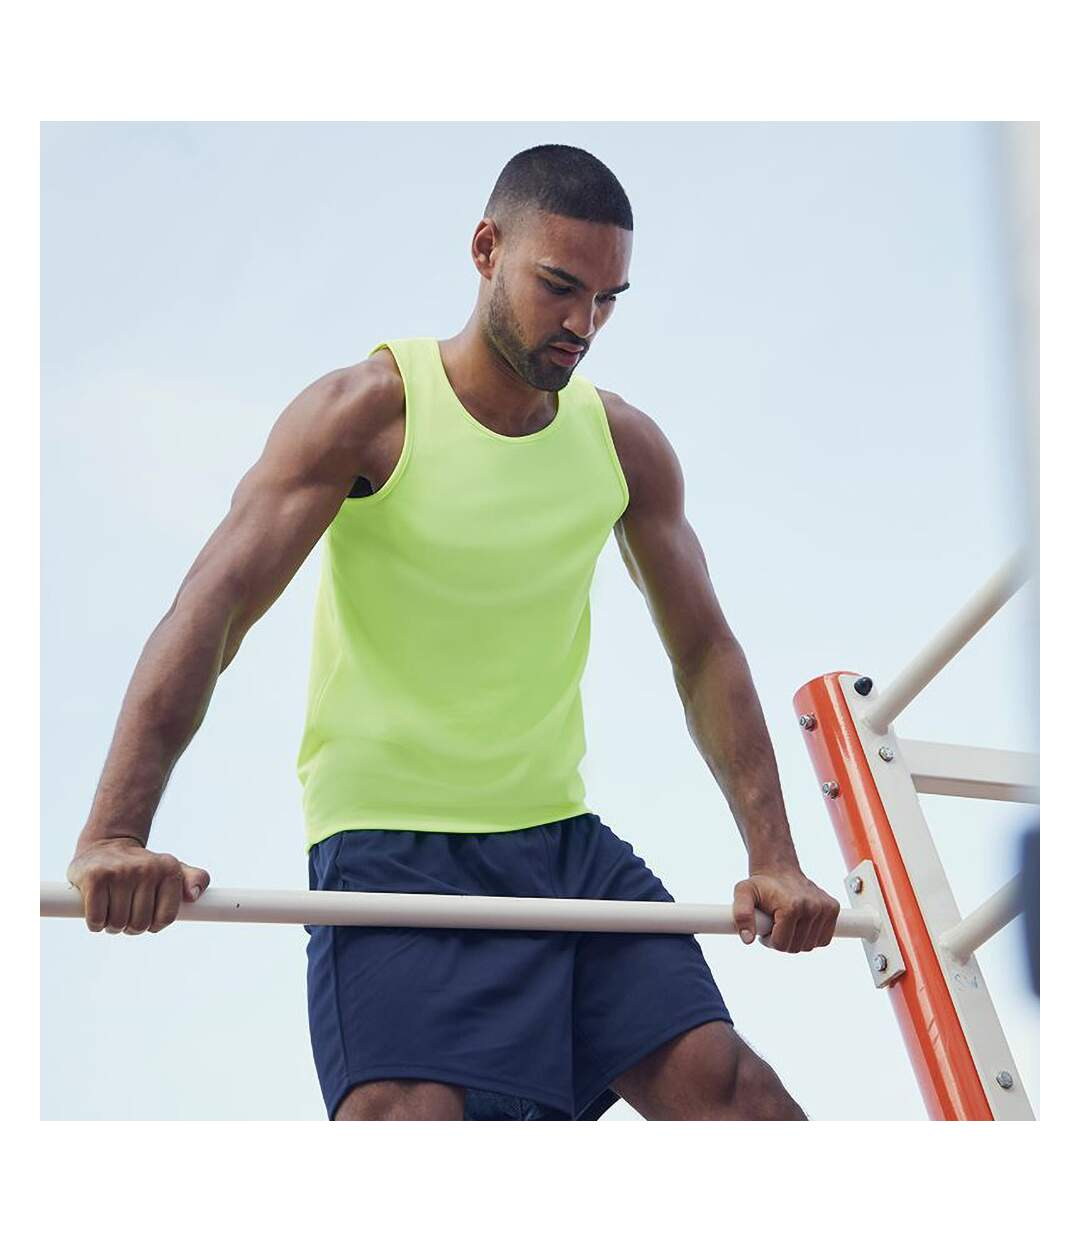 Fruit Of The Loom Mens Moisture Wicking Performance Vest Top (Lime) - UTRW4705